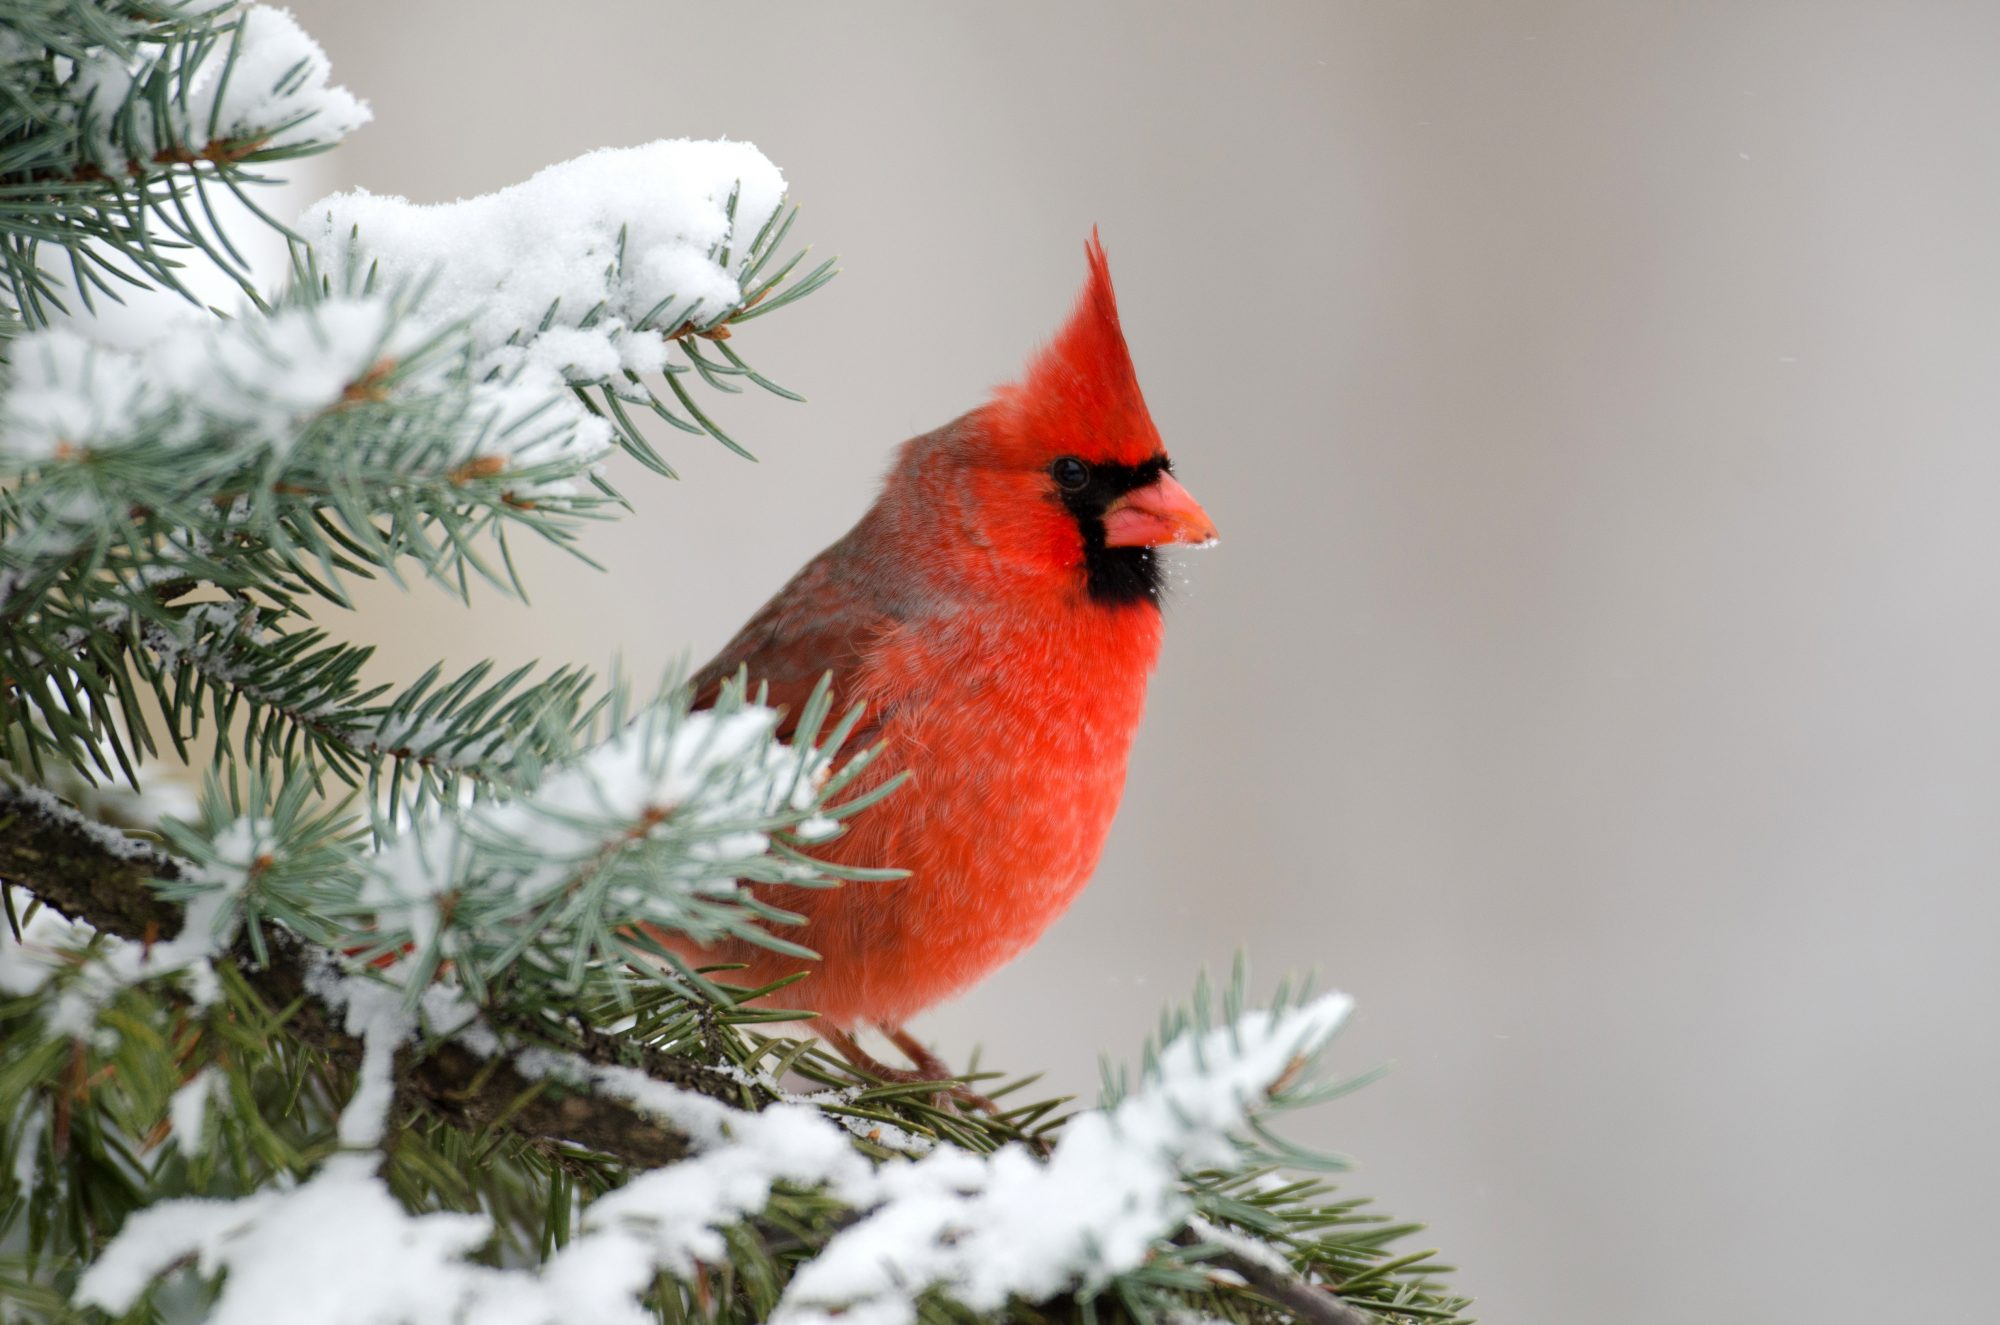 c9d7a3c7 Why The Northern Cardinal is a Favorite Winter Bird - Southern Living